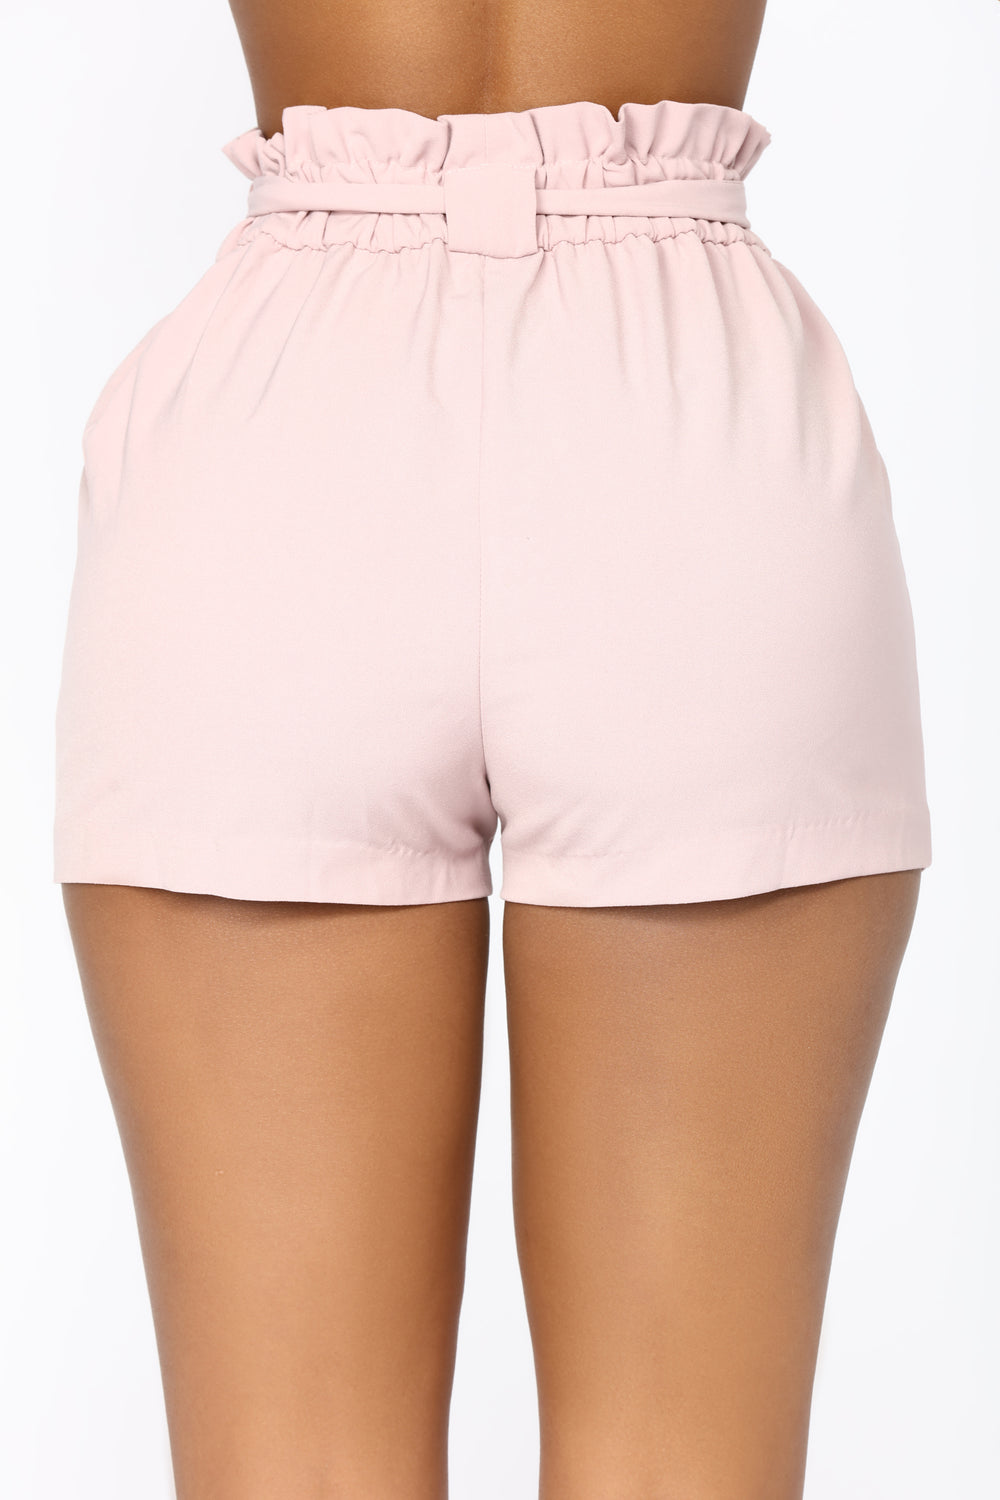 Jessie High Waisted Shorts - Pink